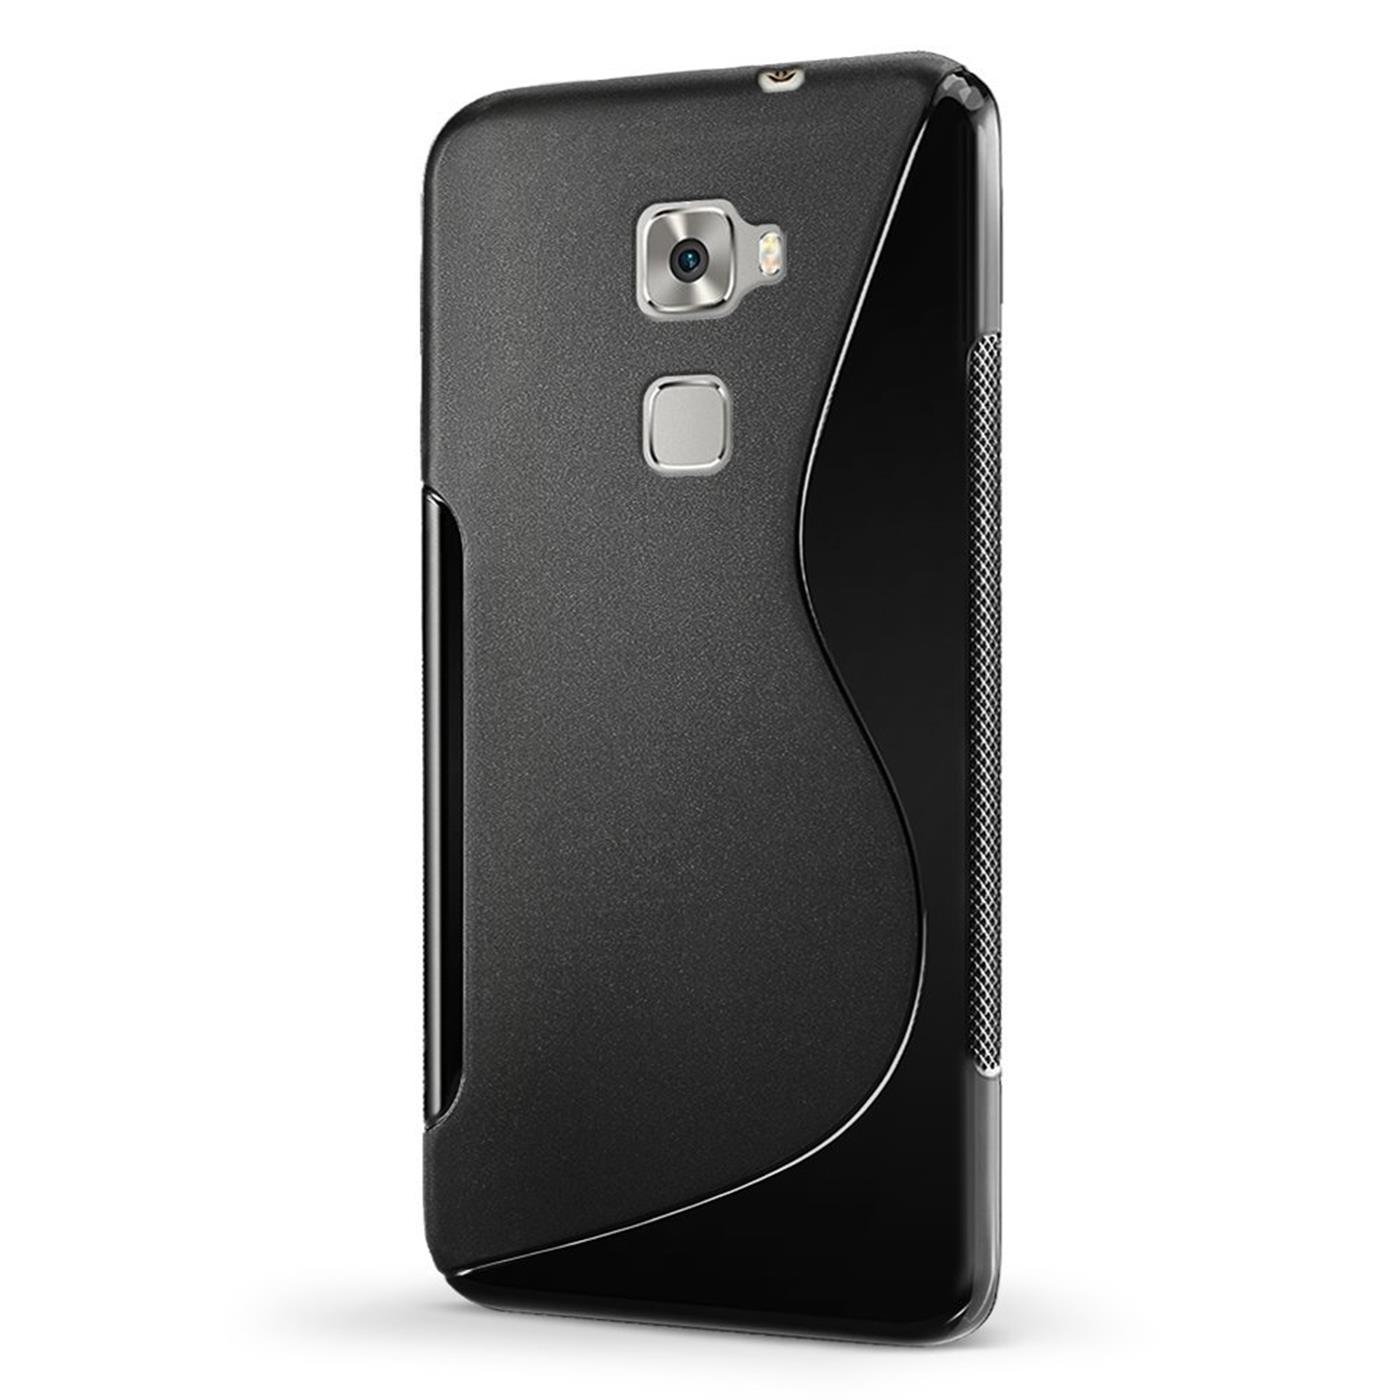 Huawei-Mate-8-Silikon-Gel-S-Line-Case-Cover-Ultra-Thin-Slim-Back-Bumper Indexbild 20